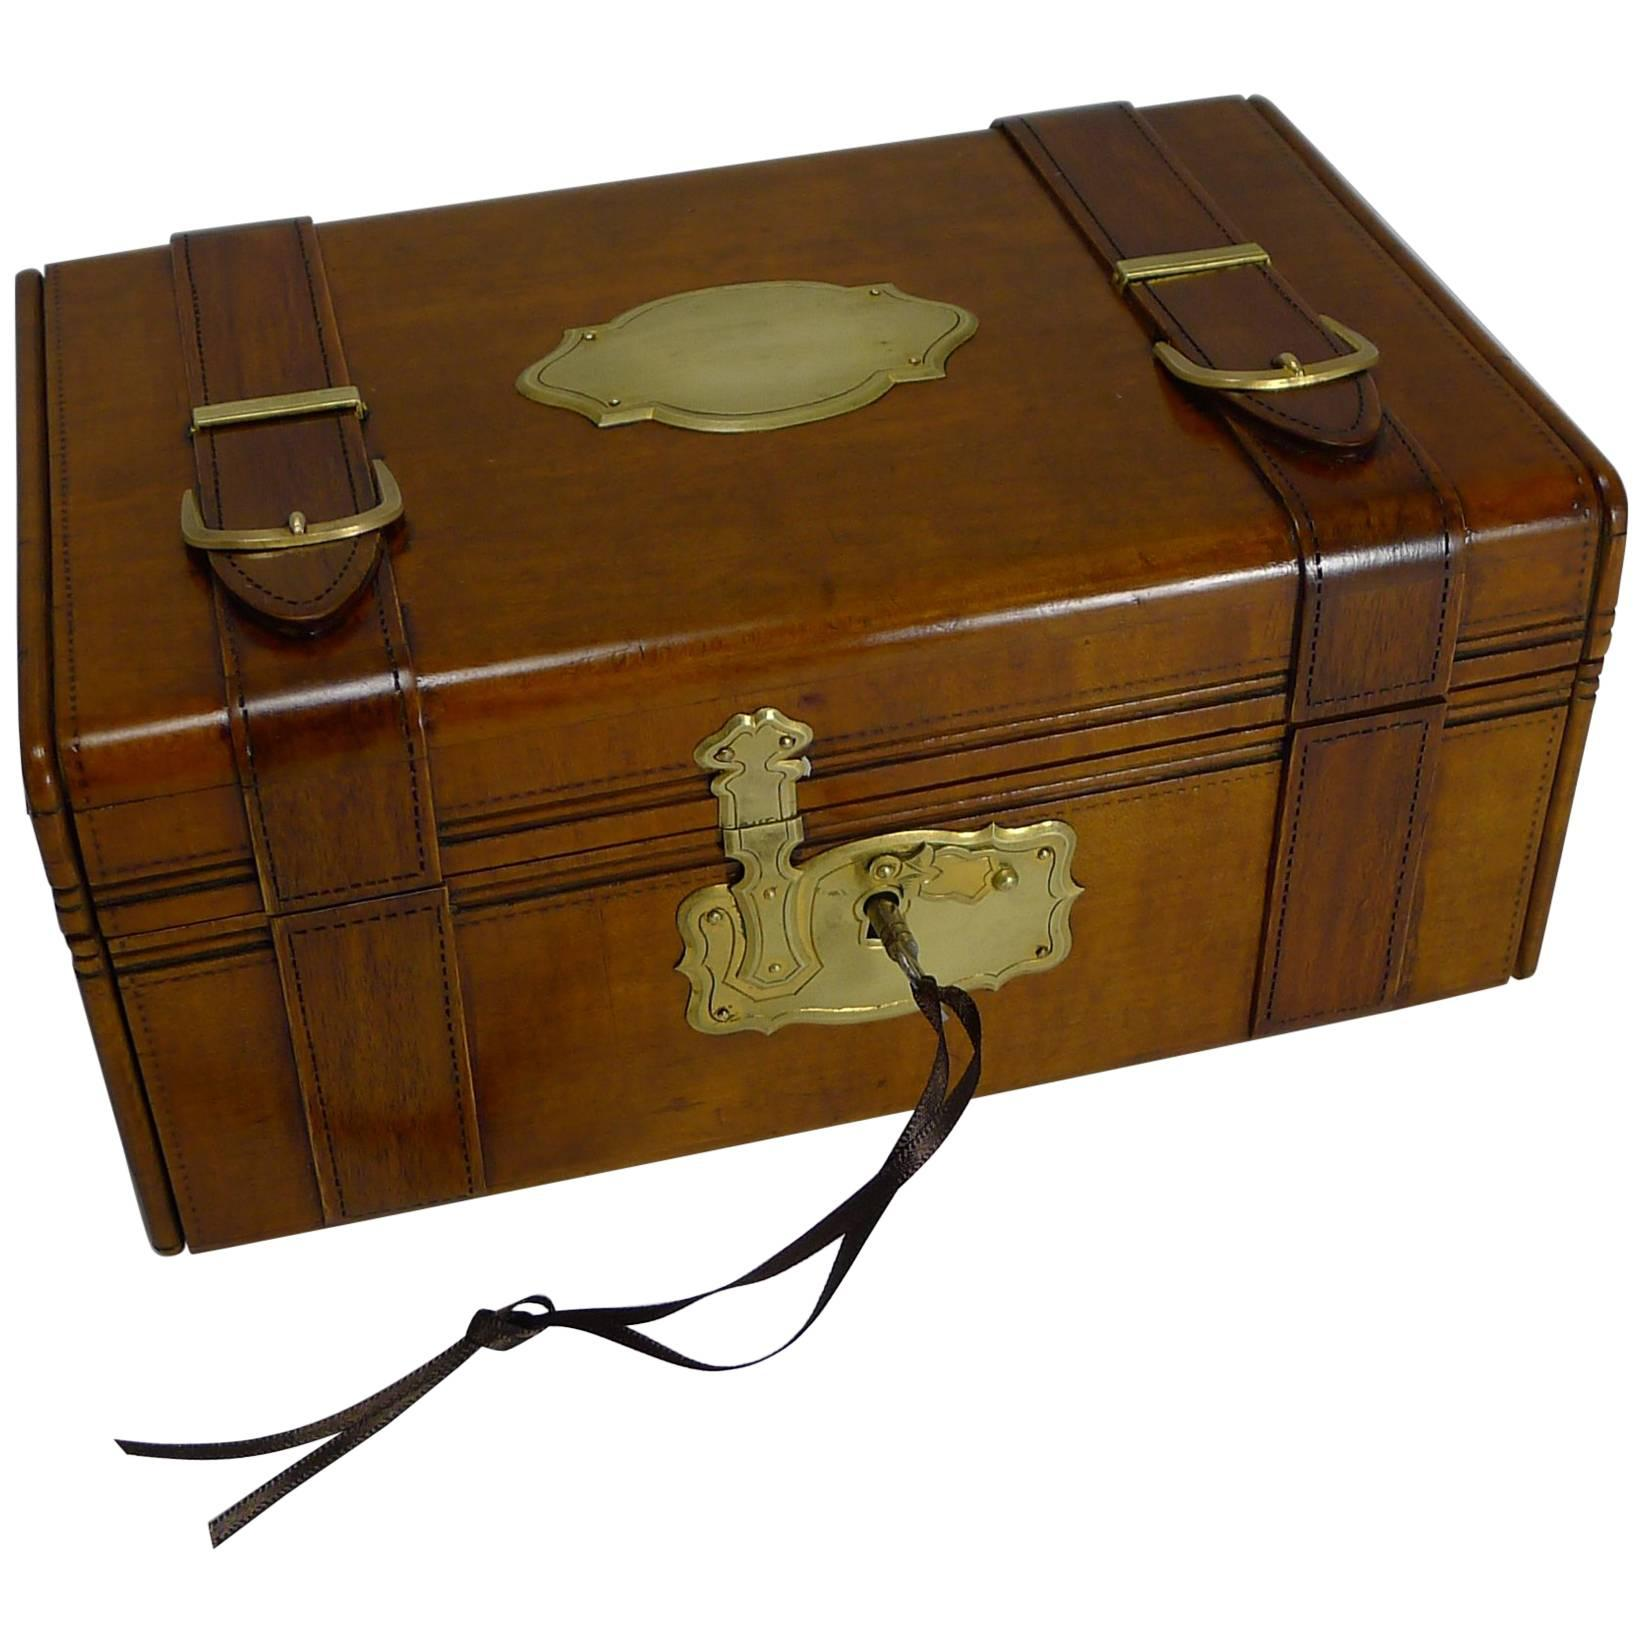 HandCarved French Jewelry Box Miniature Trunk circa 1880 For Sale